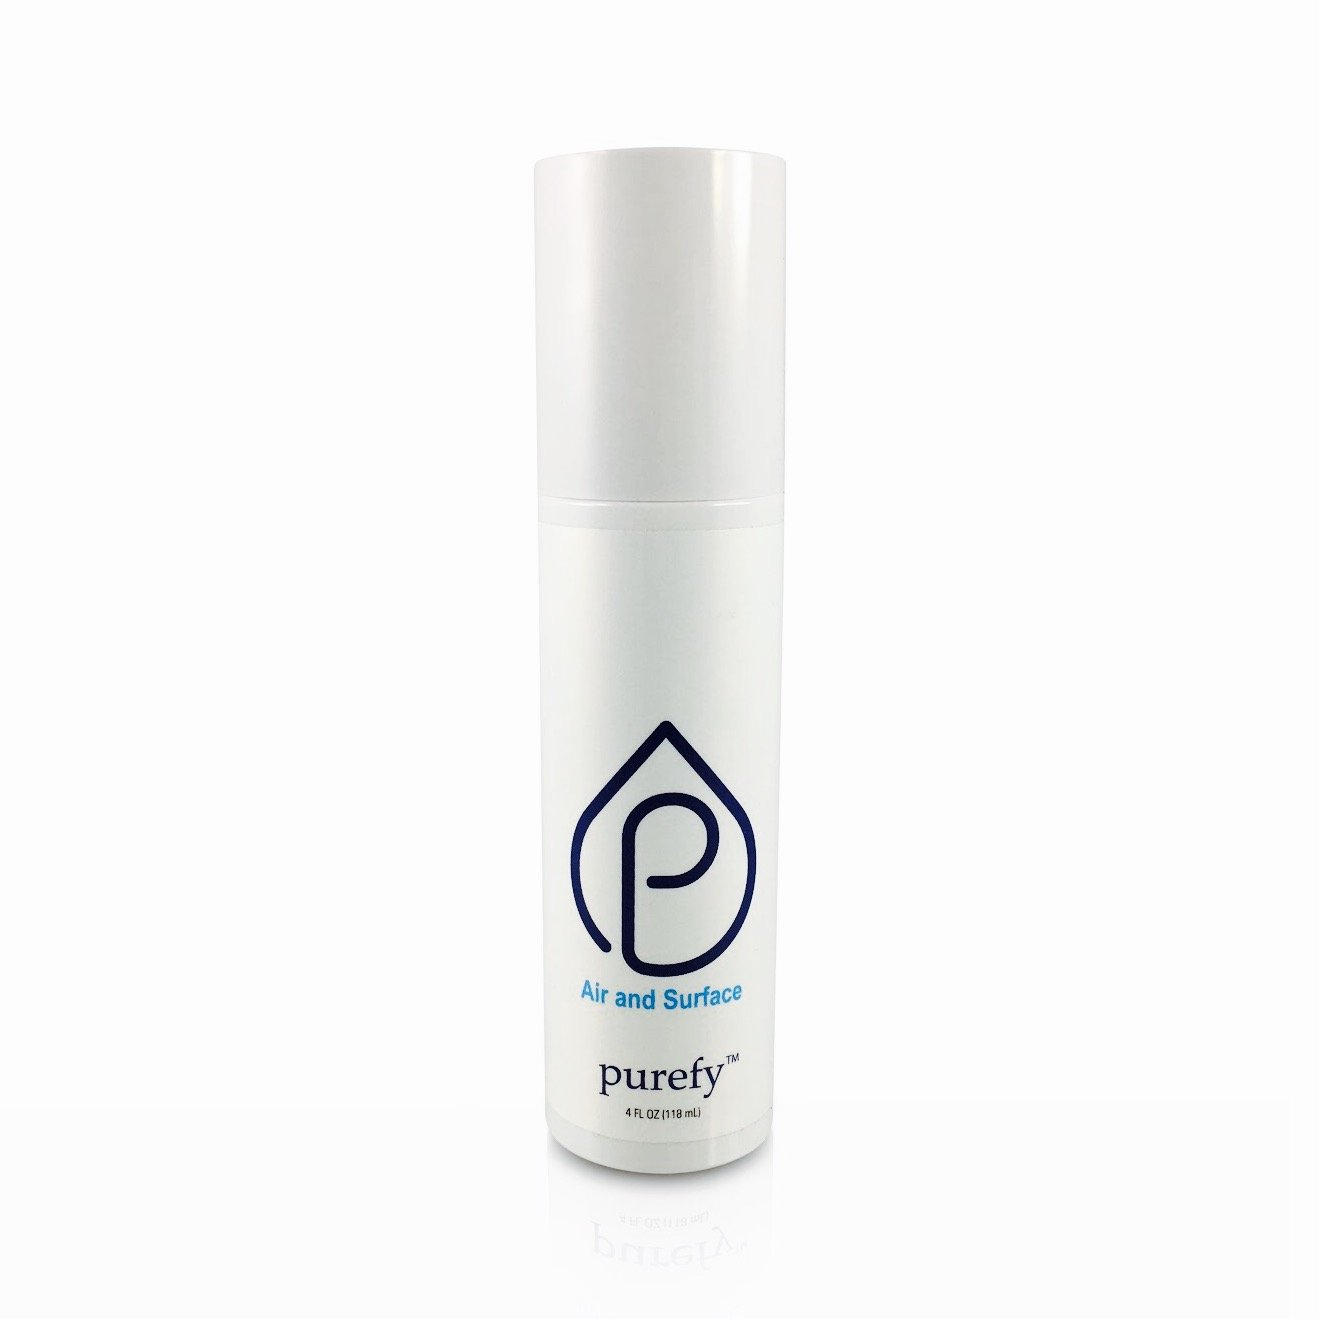 PUREFY Air and Surface Spray (On The Go, 4oz), Eliminate contaminants Anywhere, Safe for Babies, Cancer Patients, or Electronics.